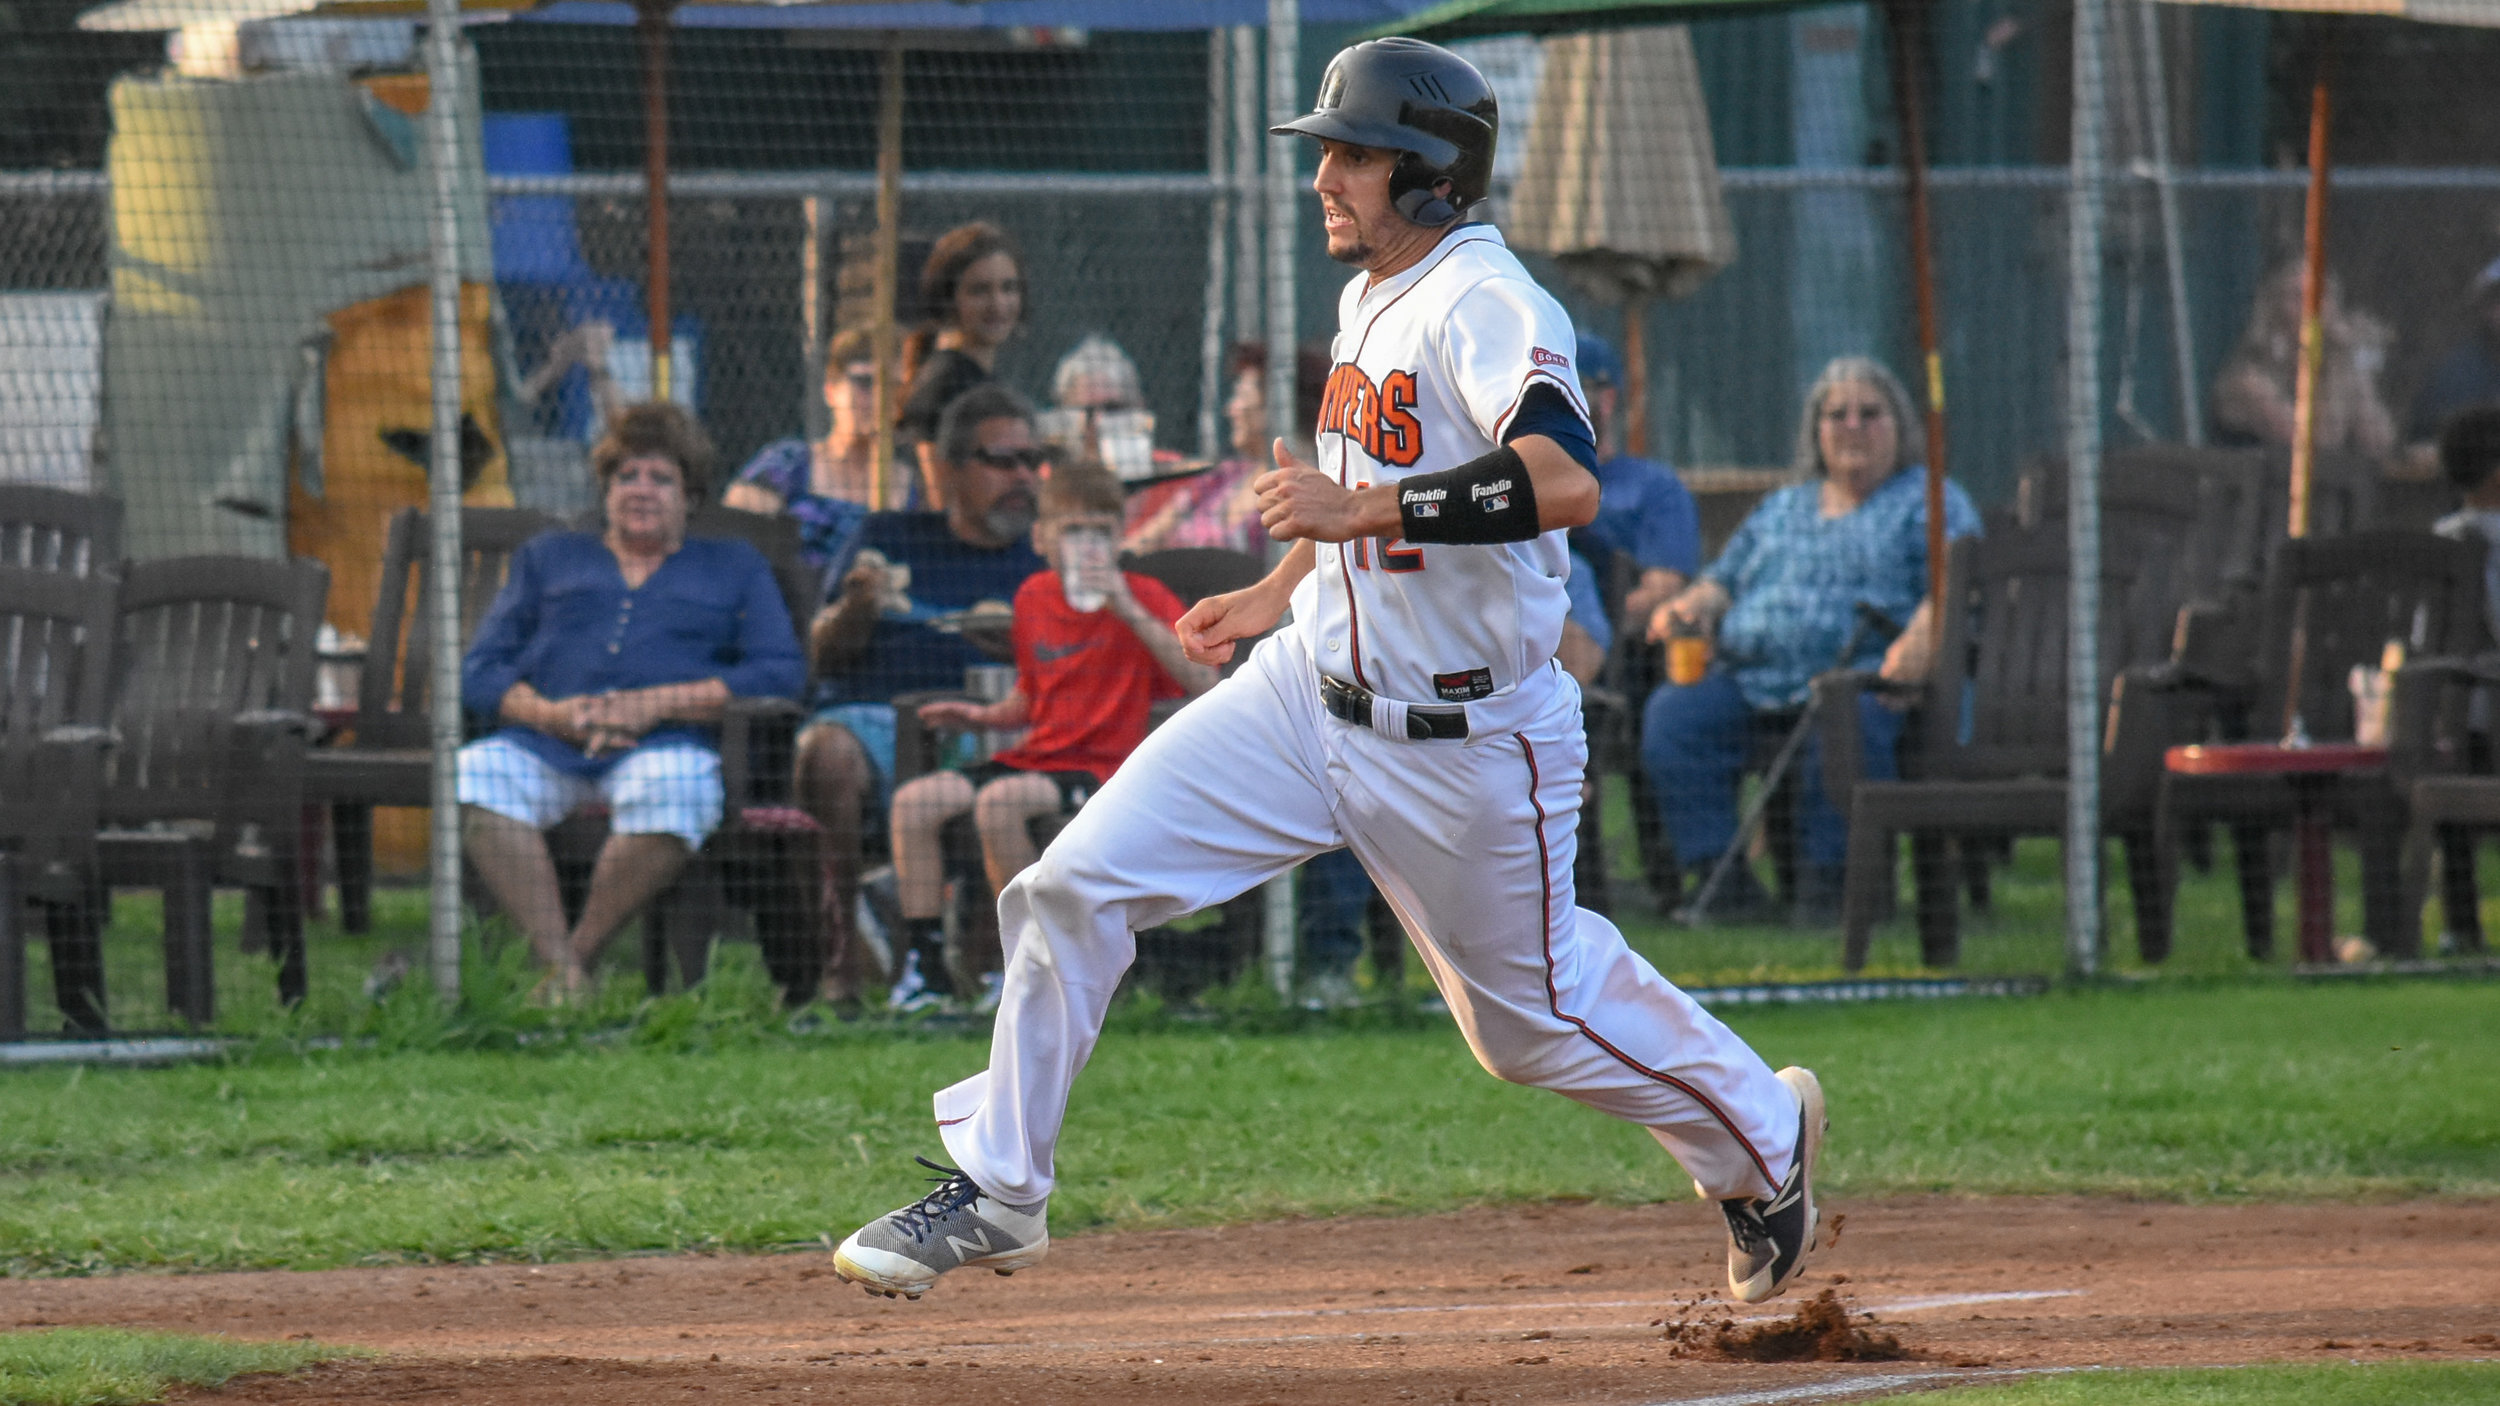 Kenny Meimerstorf rounds third base to score in the second inning of the Sonoma Stompers game against the Martinez Clippers, August 18, 2018 in Sonoma, Calif.(James W. Toy III / Sonoma Stompers)